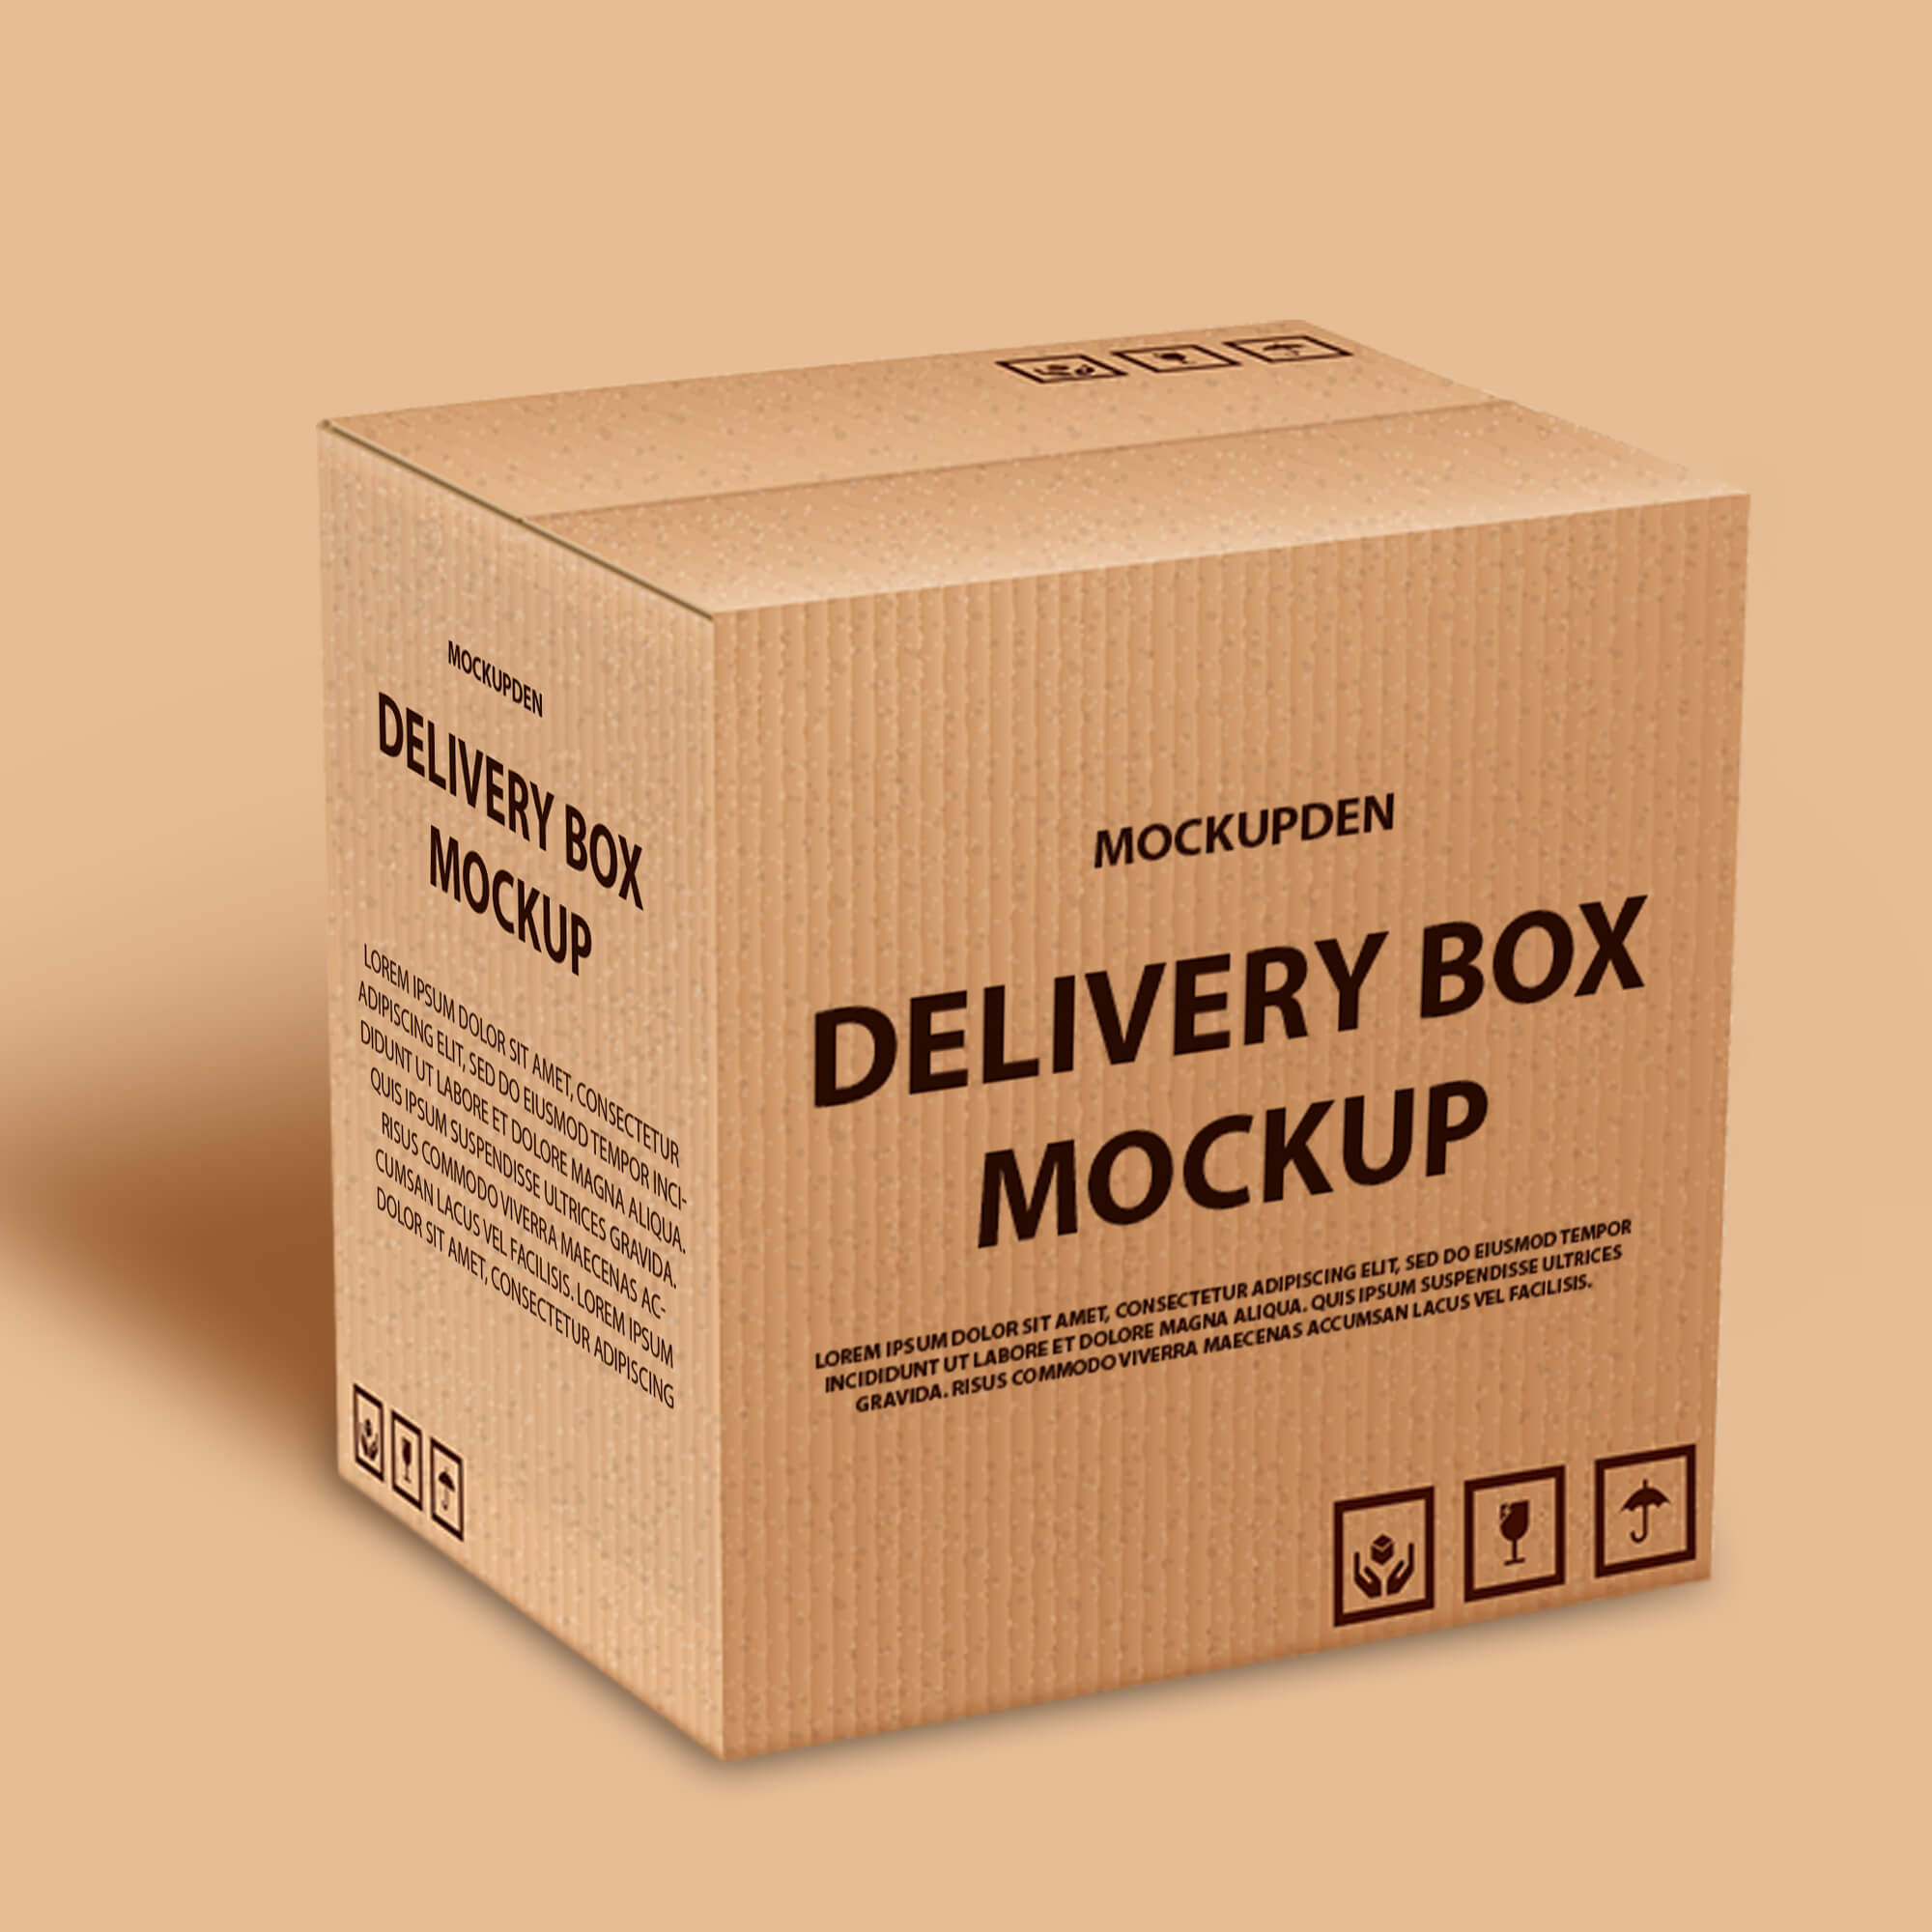 Design Free Delivery Box Mockup PSD Template